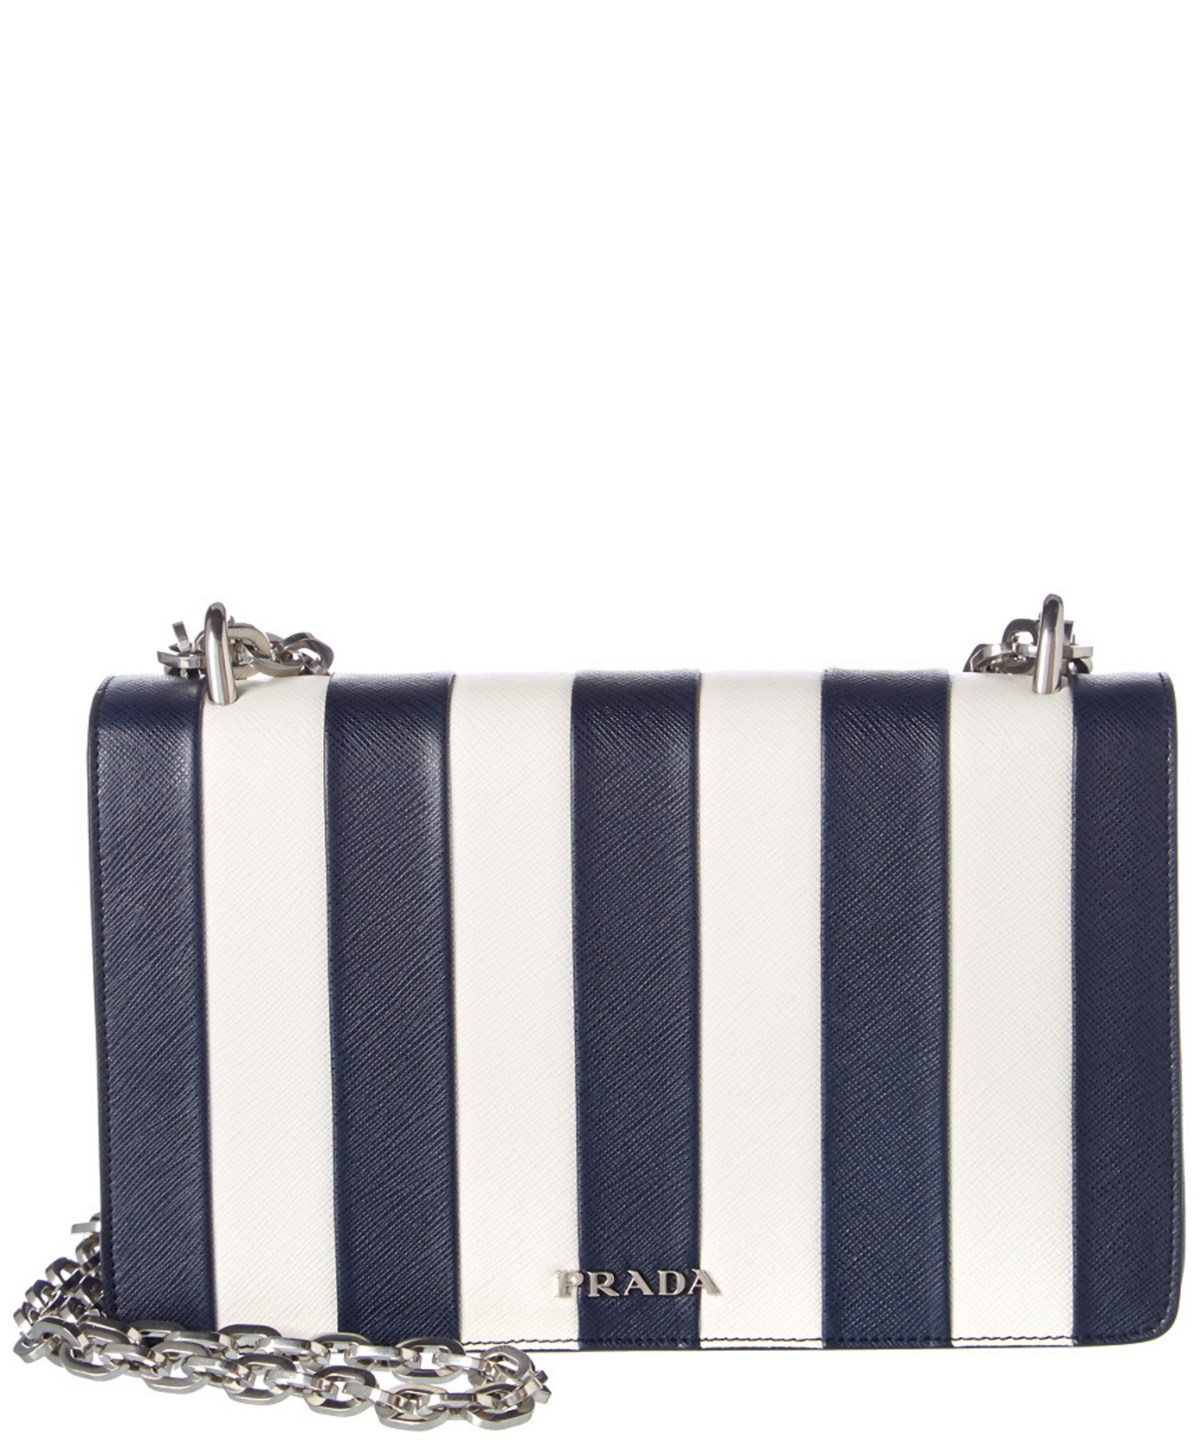 e9f1977a1851 Prada Striped Baltico Leather Chain Strap Shoulder Handbag' In Blue ...